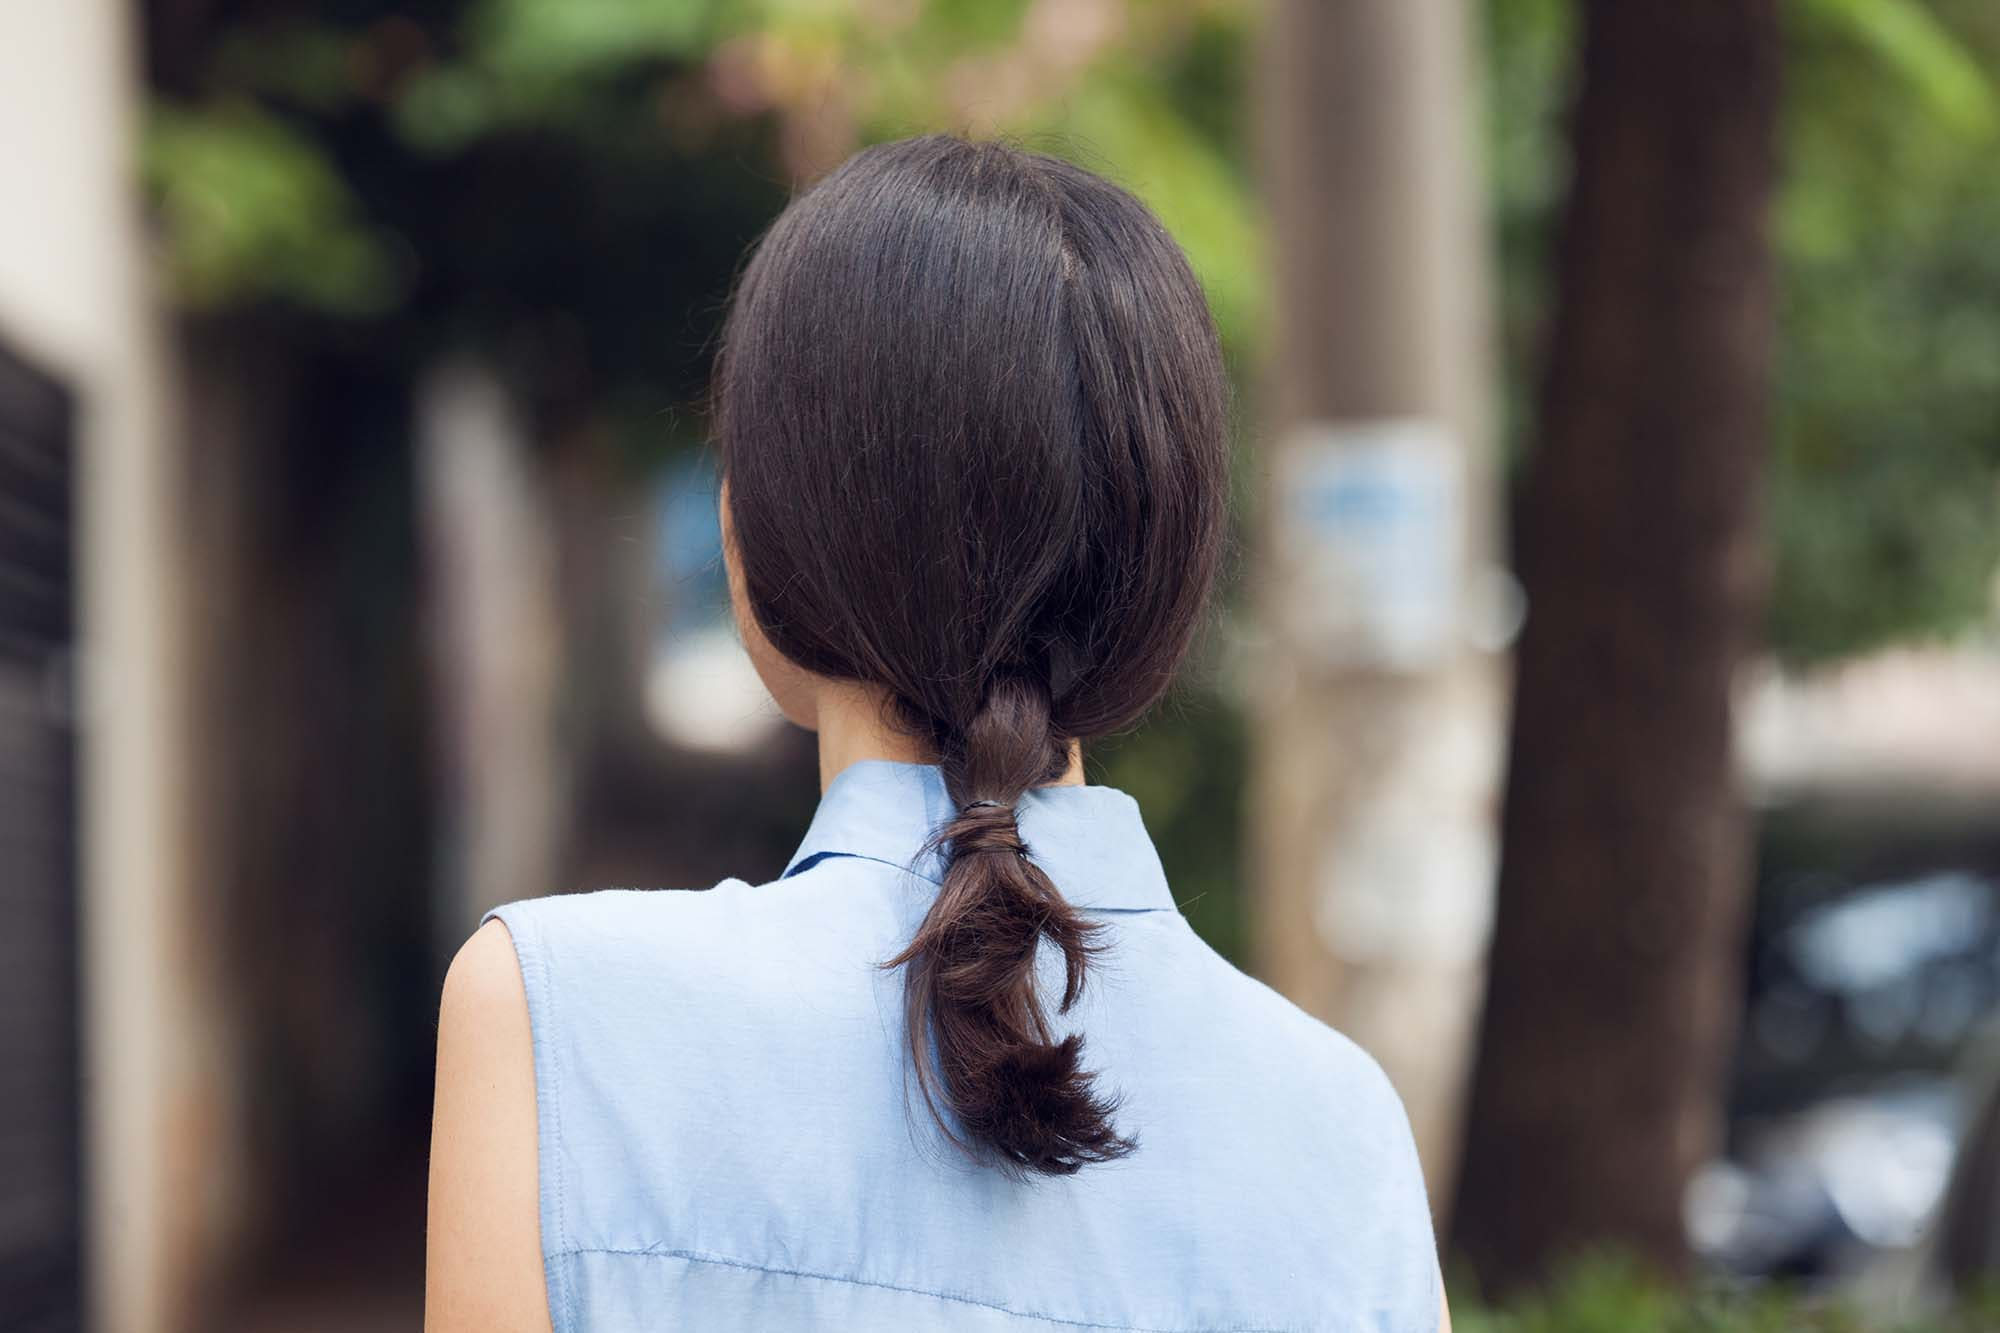 shoulder-length hairstyles for date night twisted low ponytail brunette